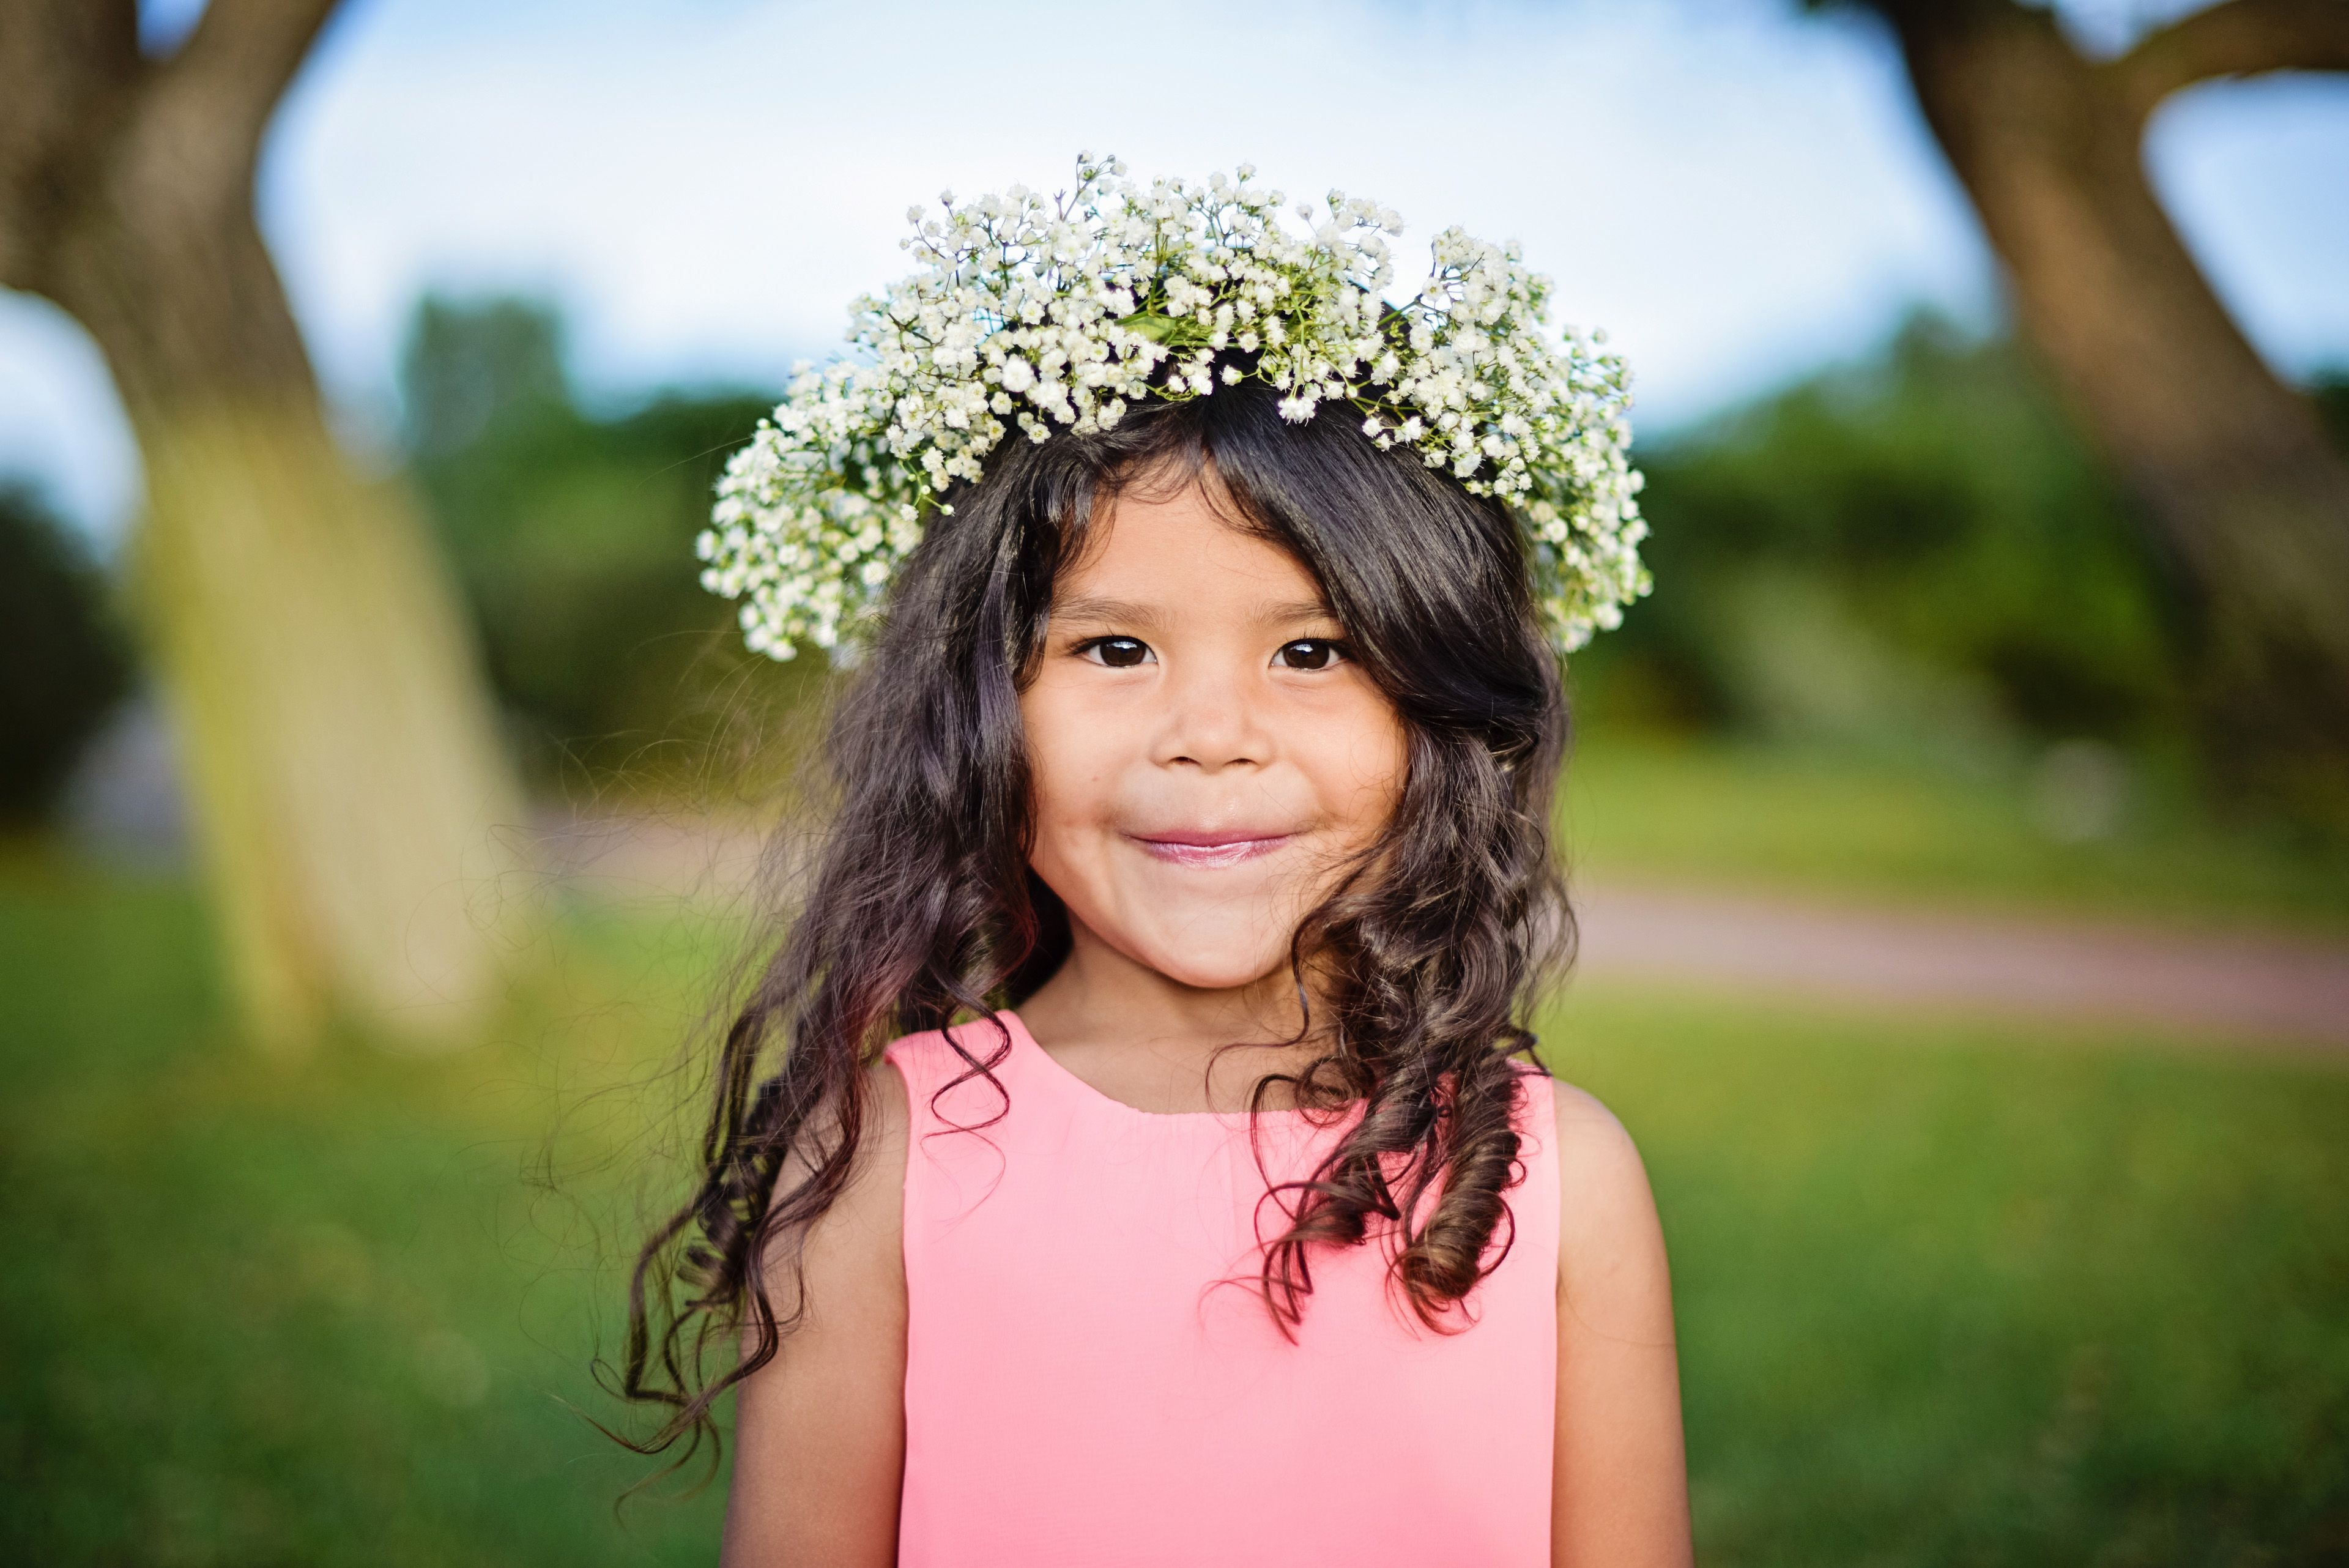 Beautiful flower crown for your flower girl facebook beautiful flower crown for your flower girl facebookhsfloraldesign izmirmasajfo